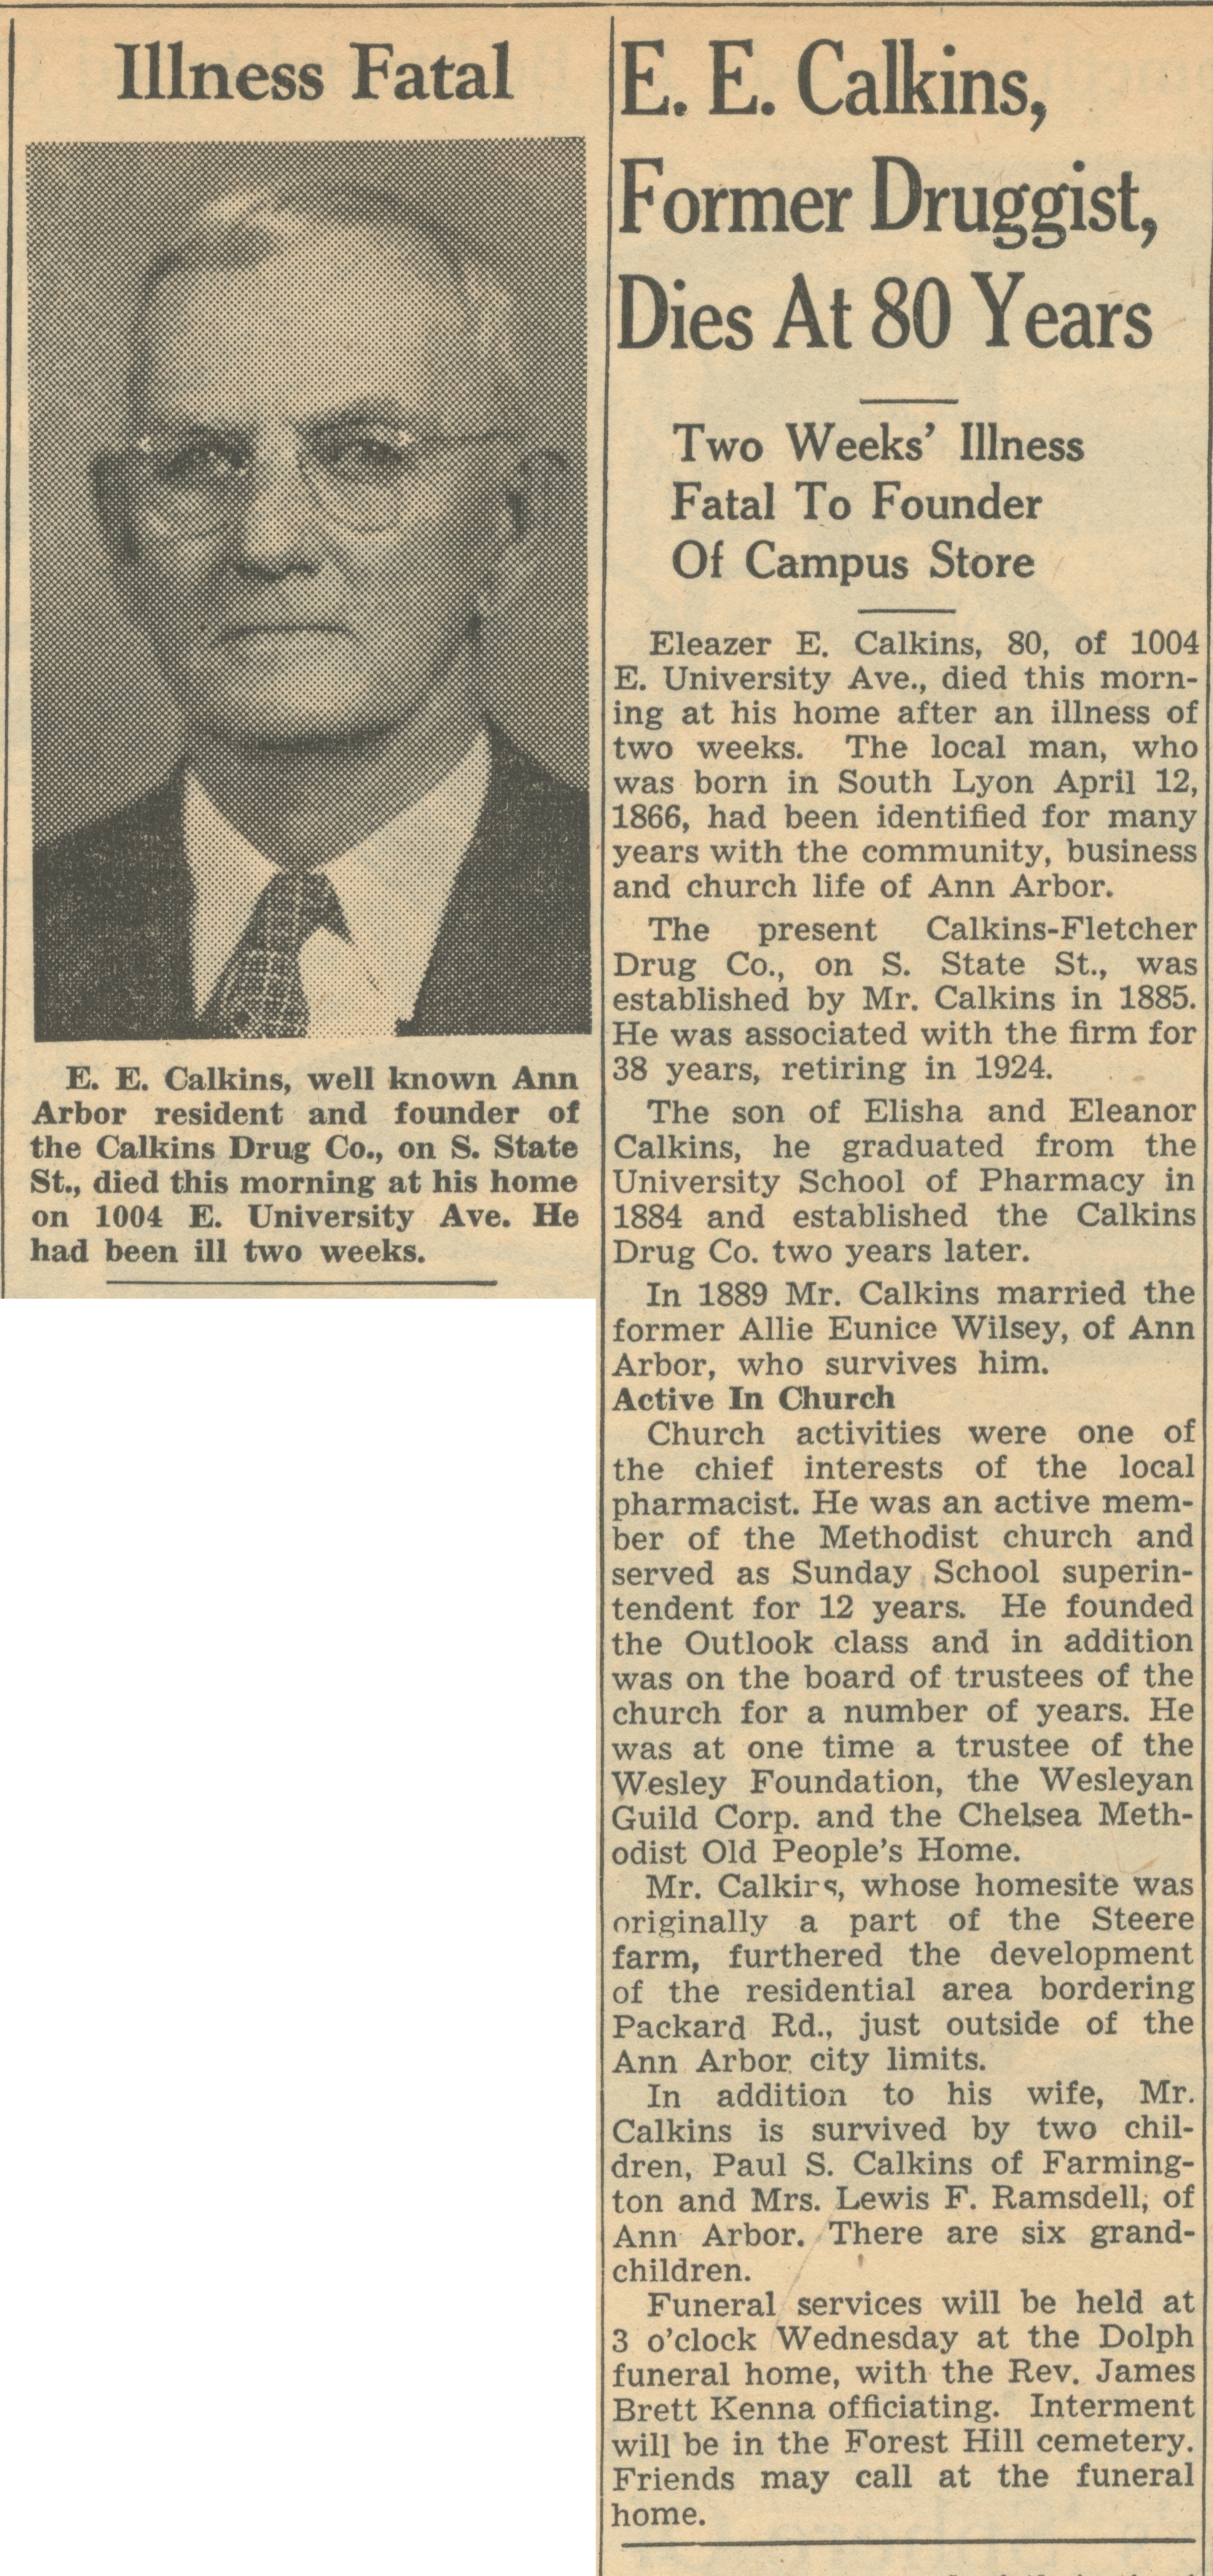 E. E. Calkins, Former Druggist, Dies At 80 Years image